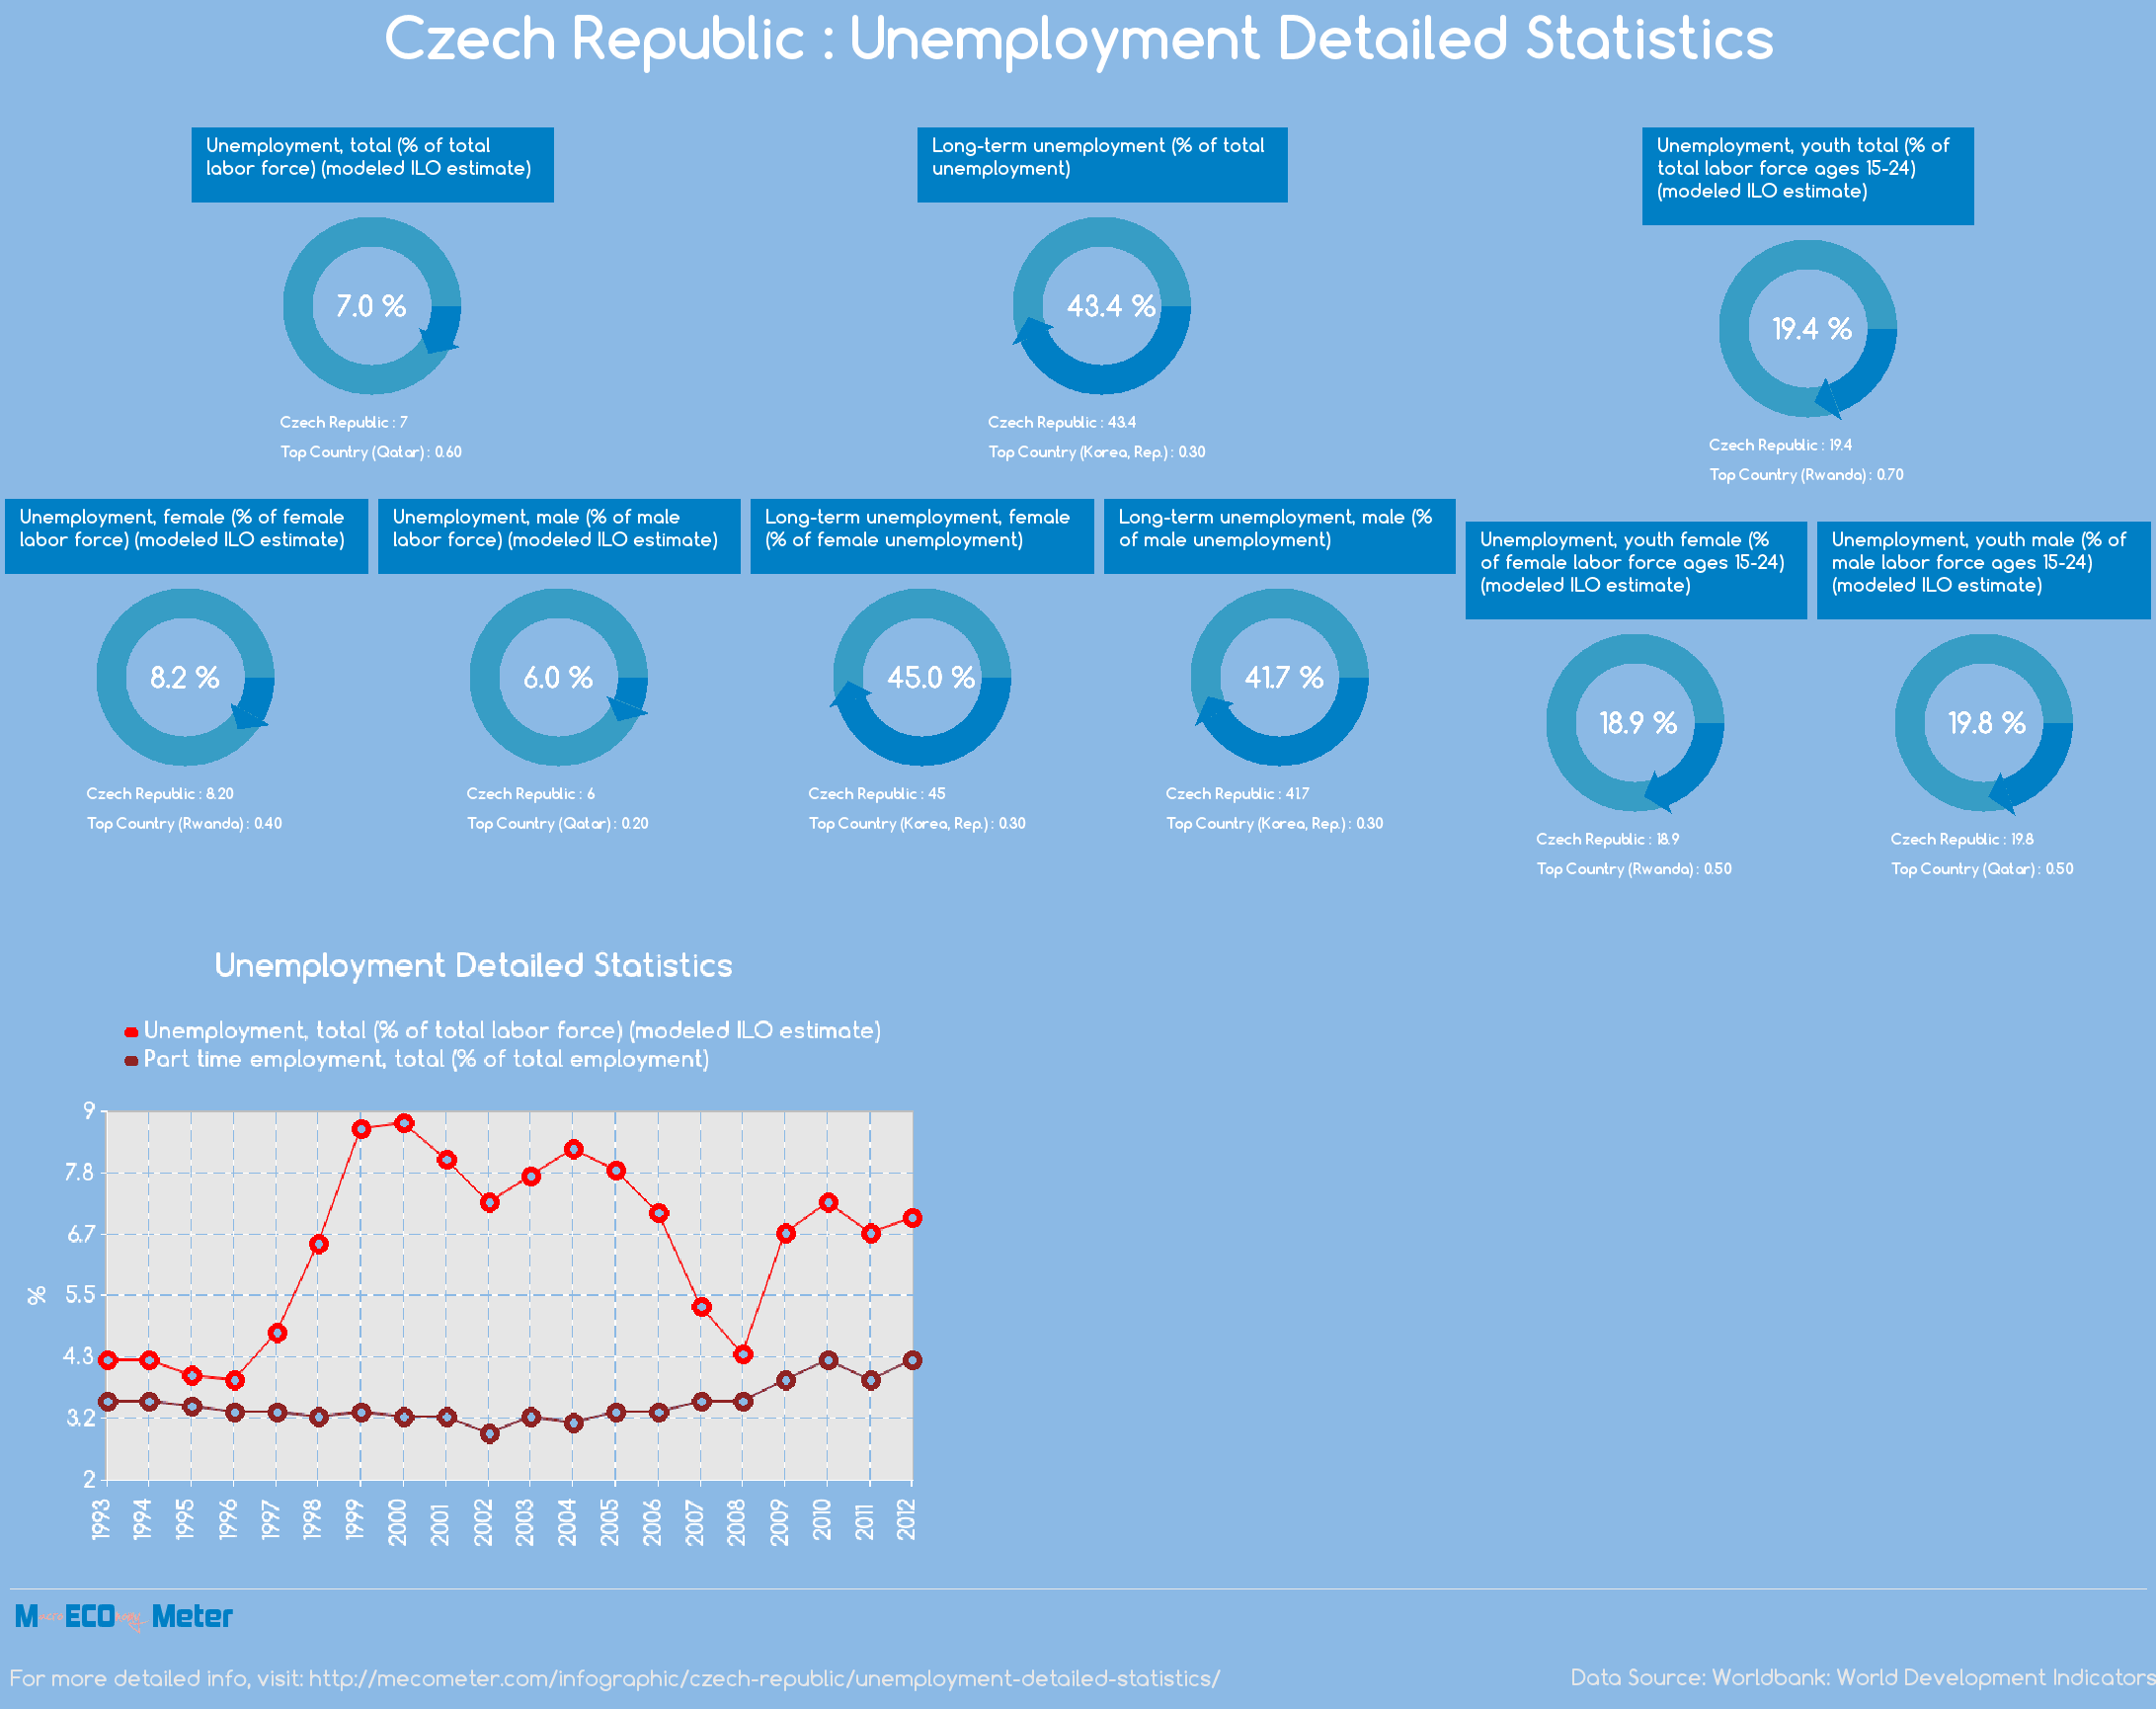 Czech Republic : Unemployment Detailed Statistics